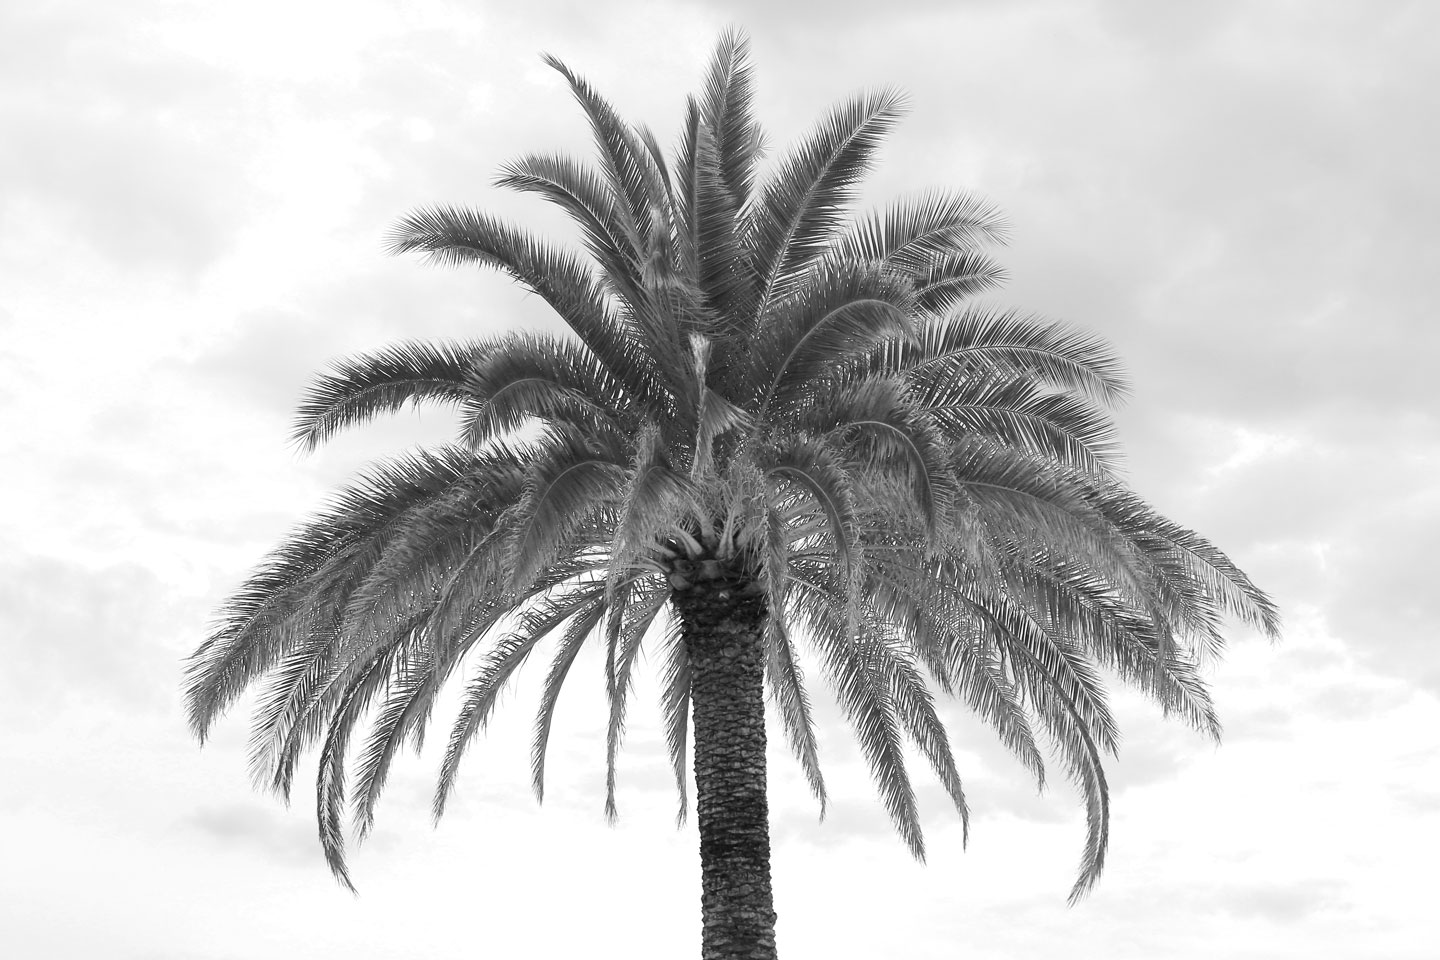 French Photographer Landscape Photography Palm